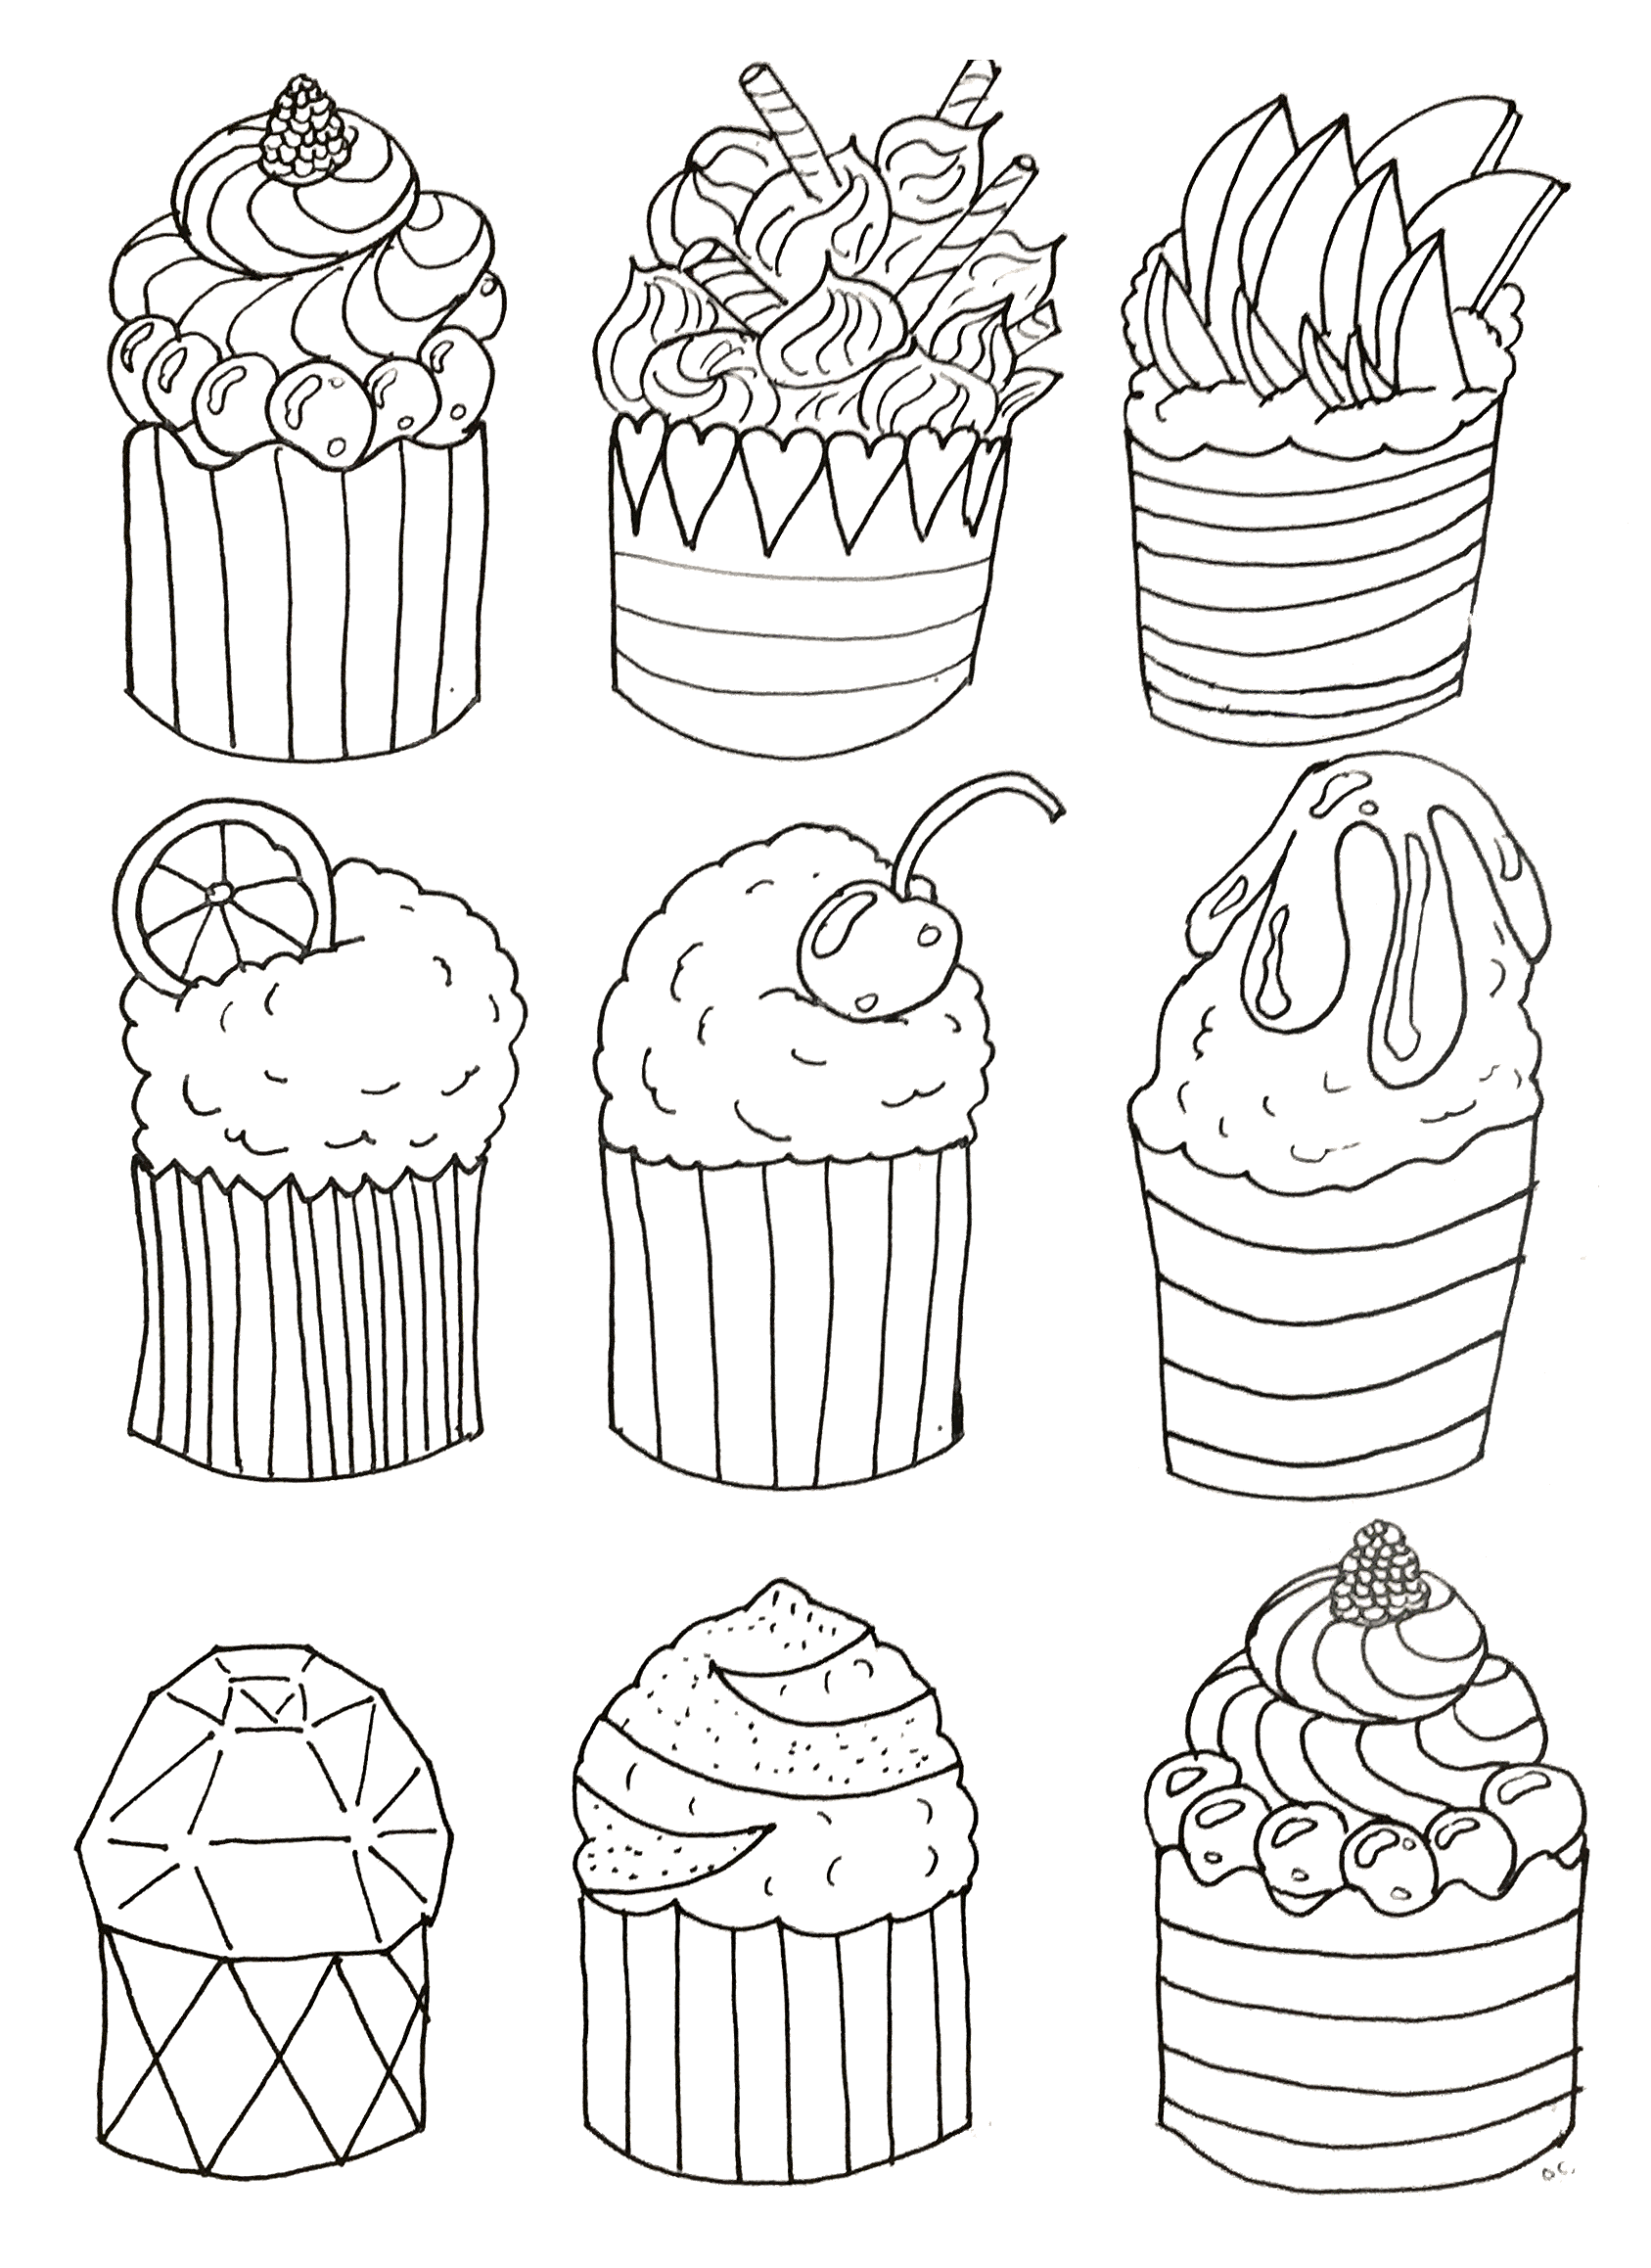 coloring-simple-cupcakes-by-olivier, From the gallery